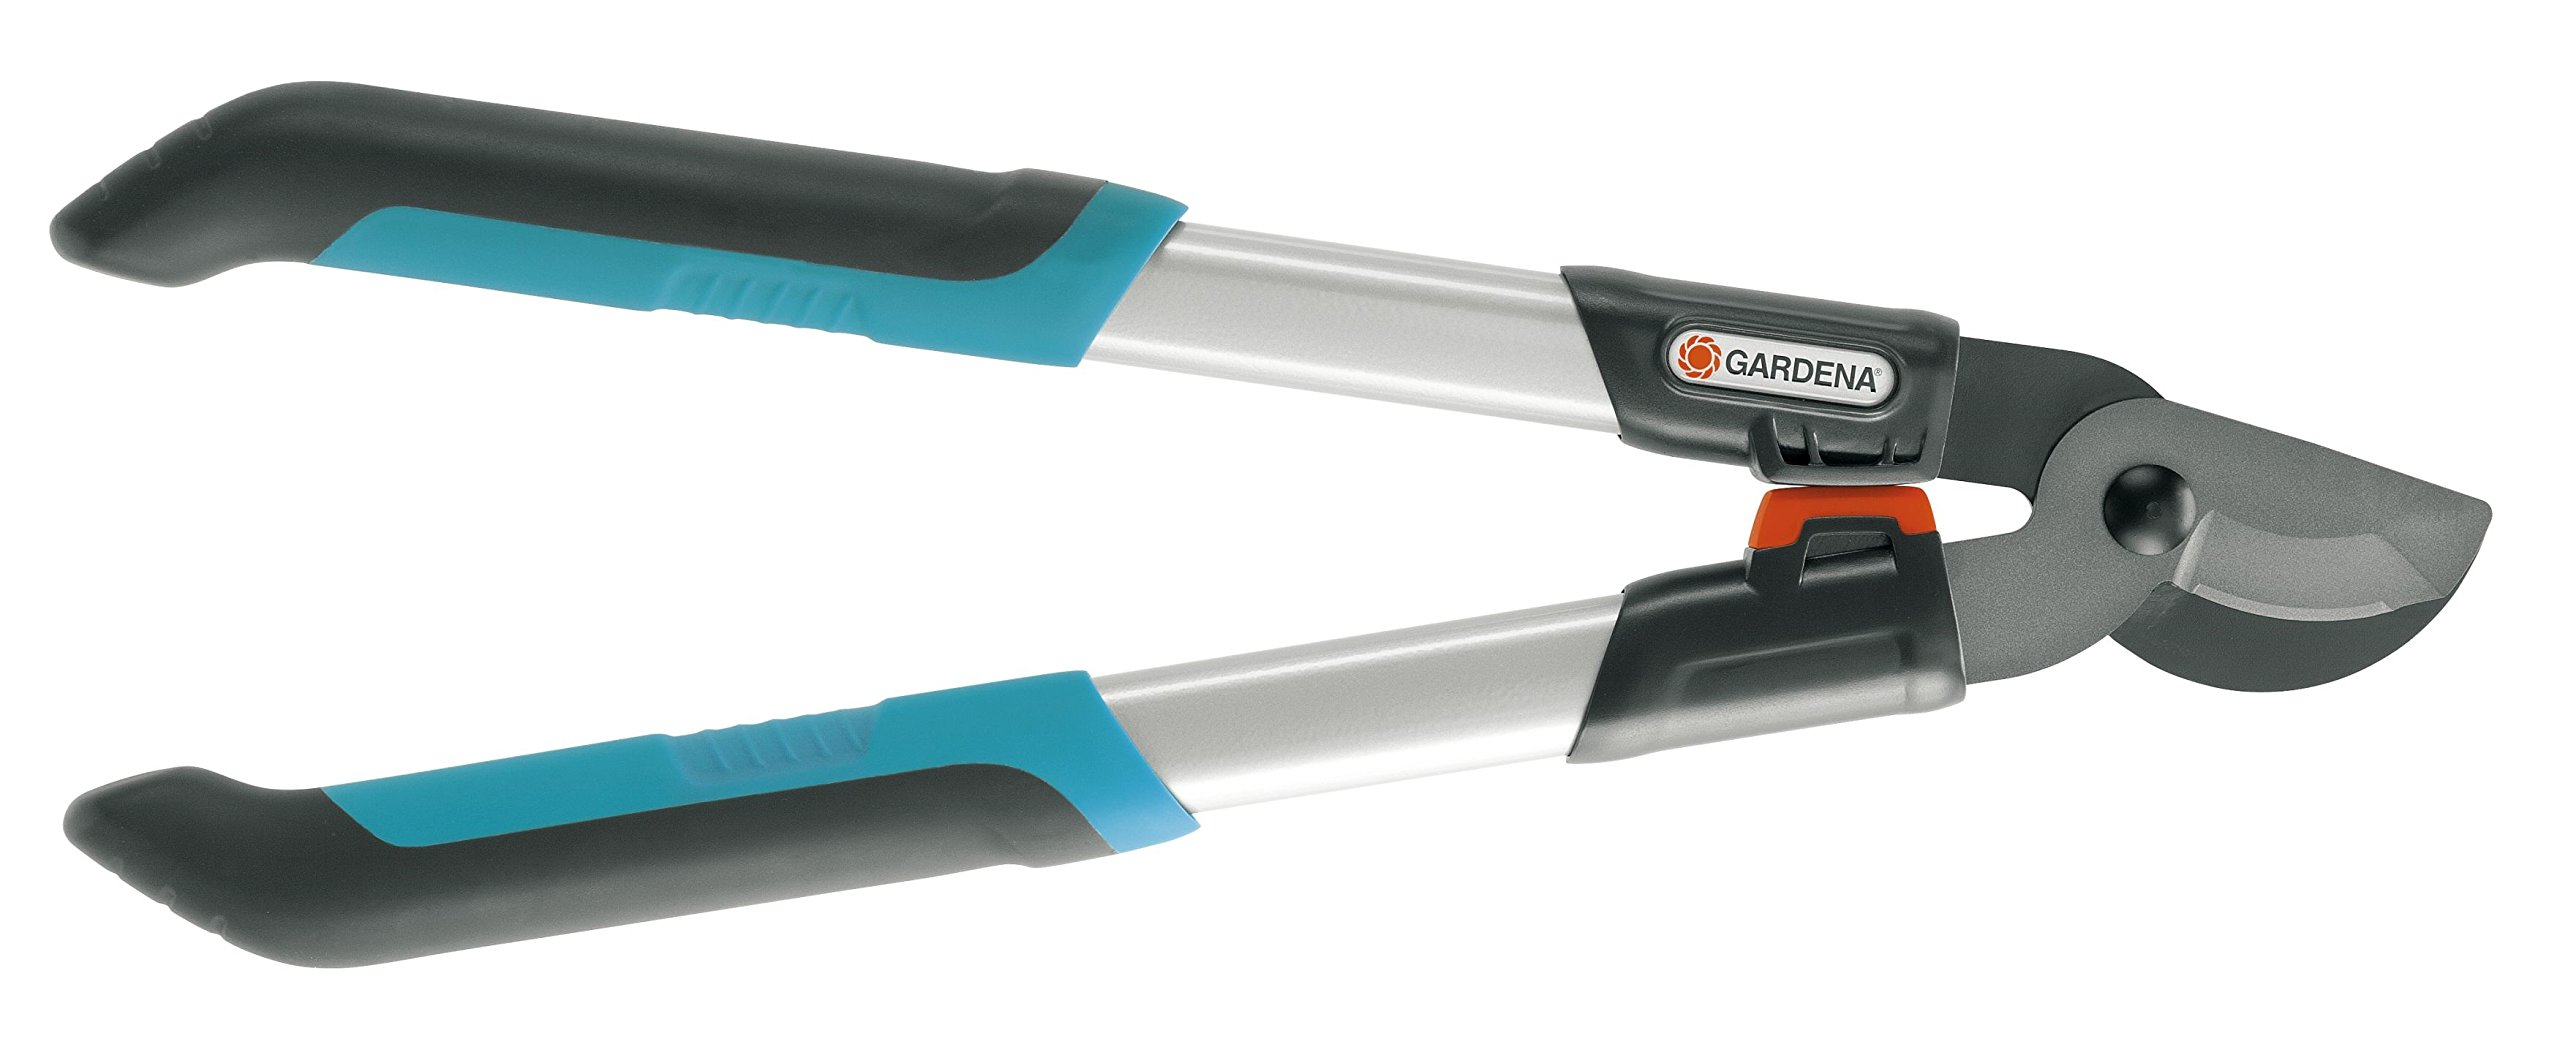 GARDENA 460B Classic Pruning Loppers